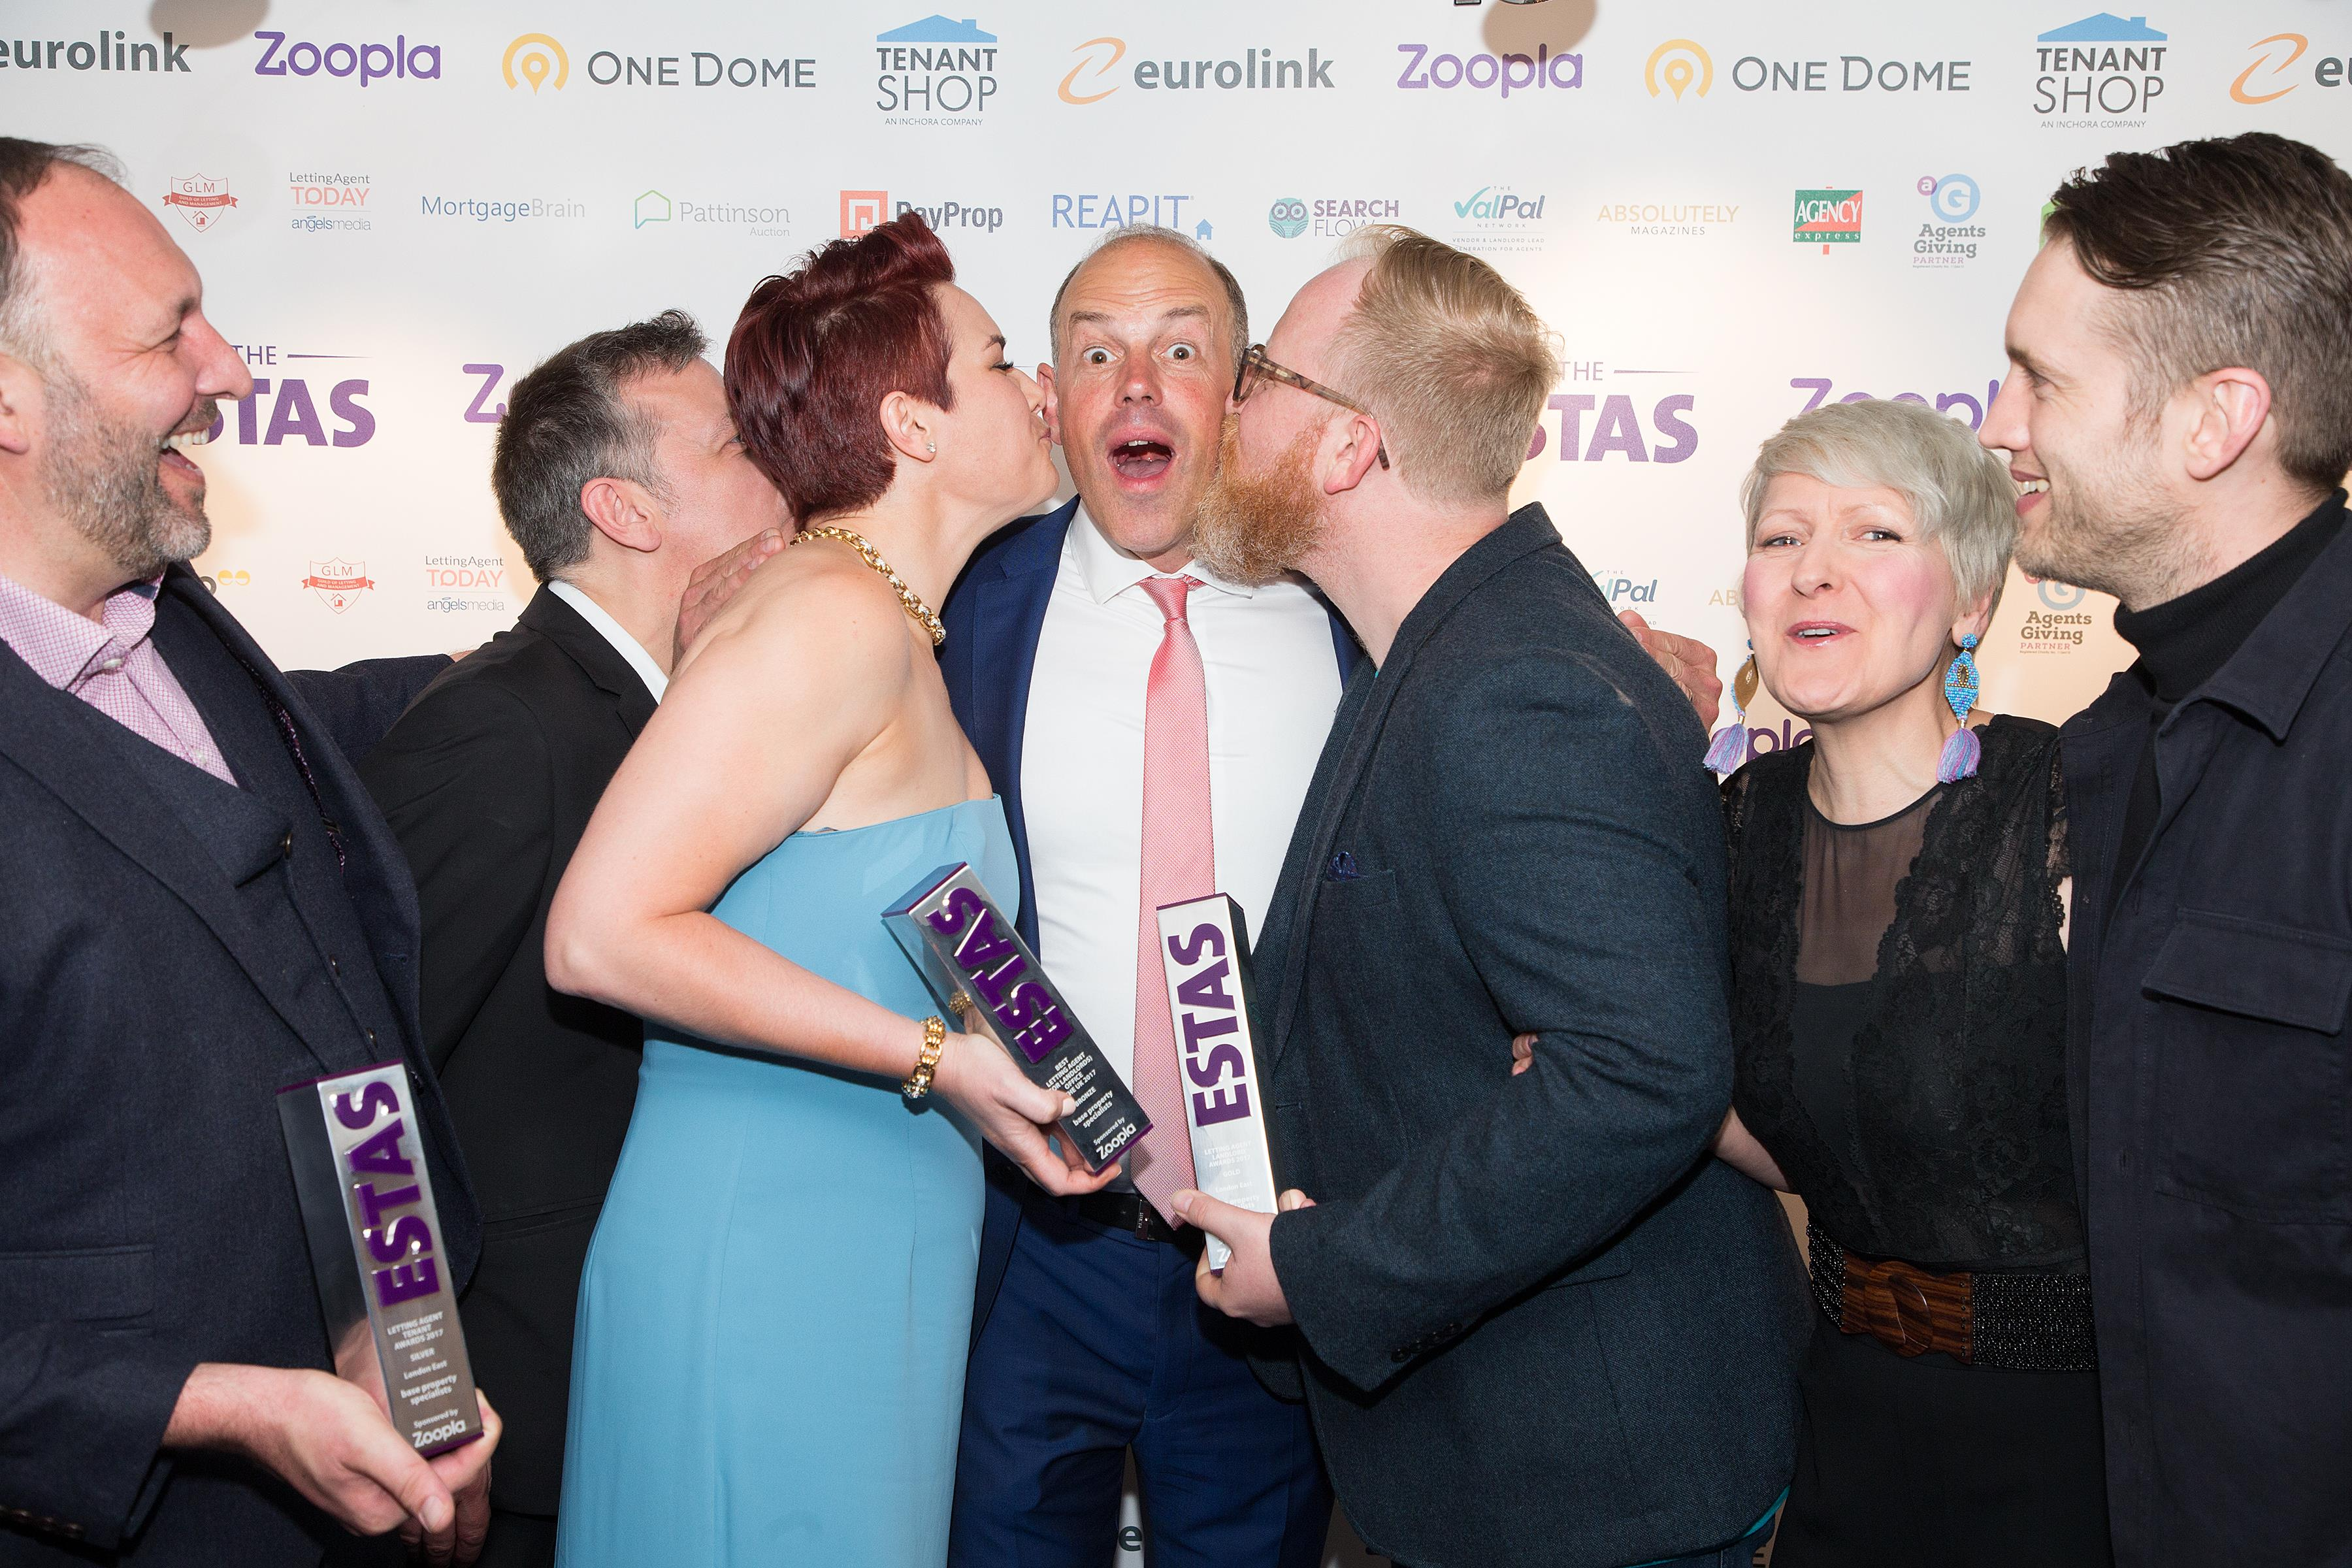 base wins big at The ESTAS 2017 with 3 major awards